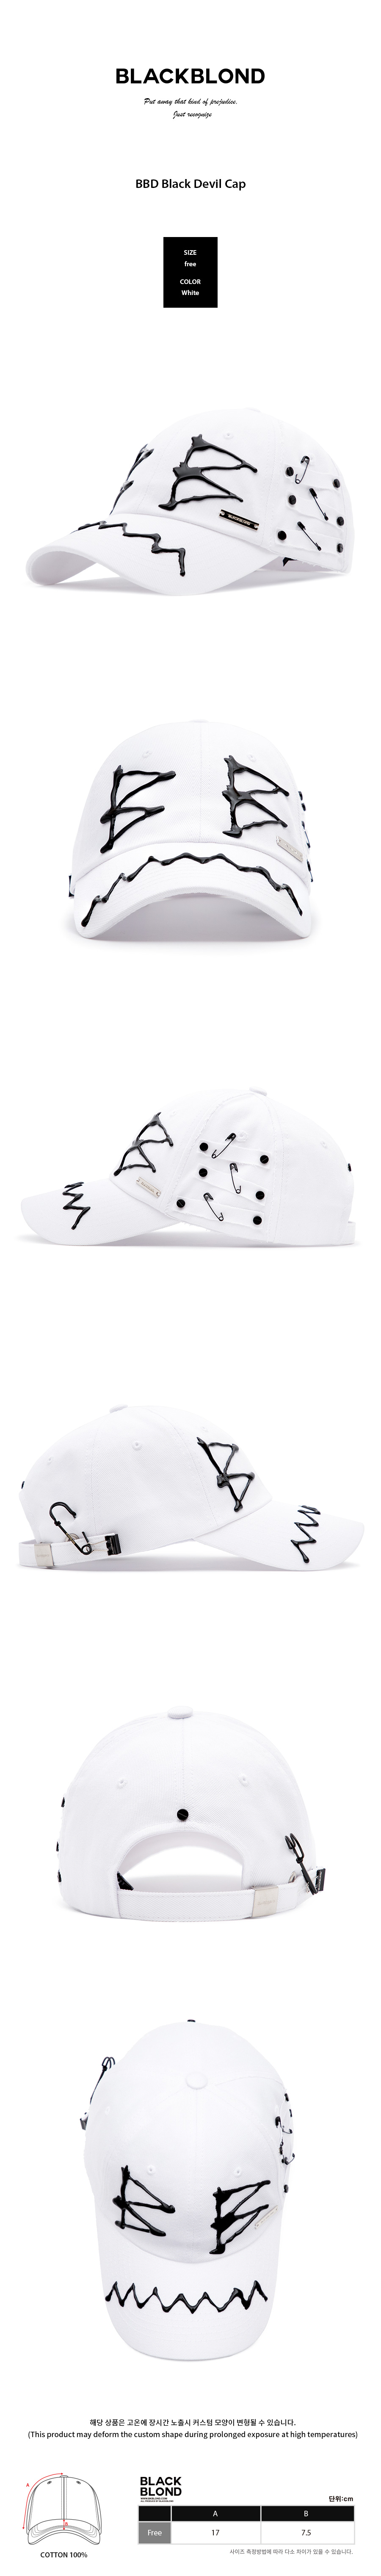 블랙블론드 BLACKBLOND - BBD Black Devil Cap (White)